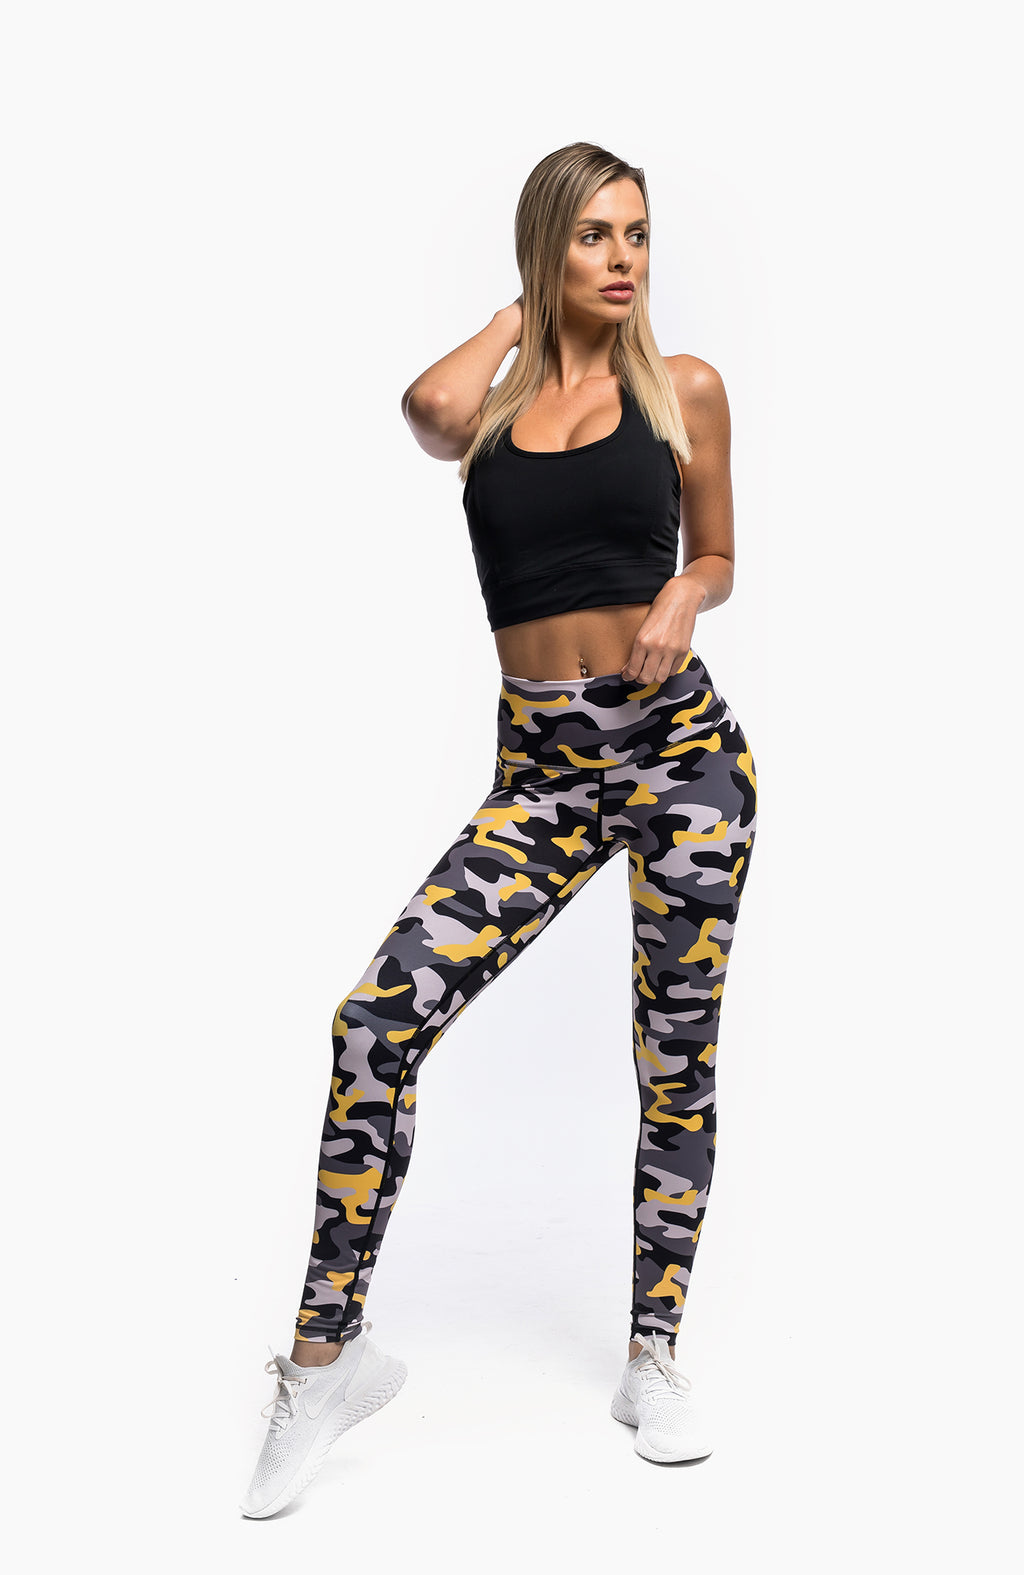 PURSUE LEGGINGS - CAMO YELLOW - hustletics.com